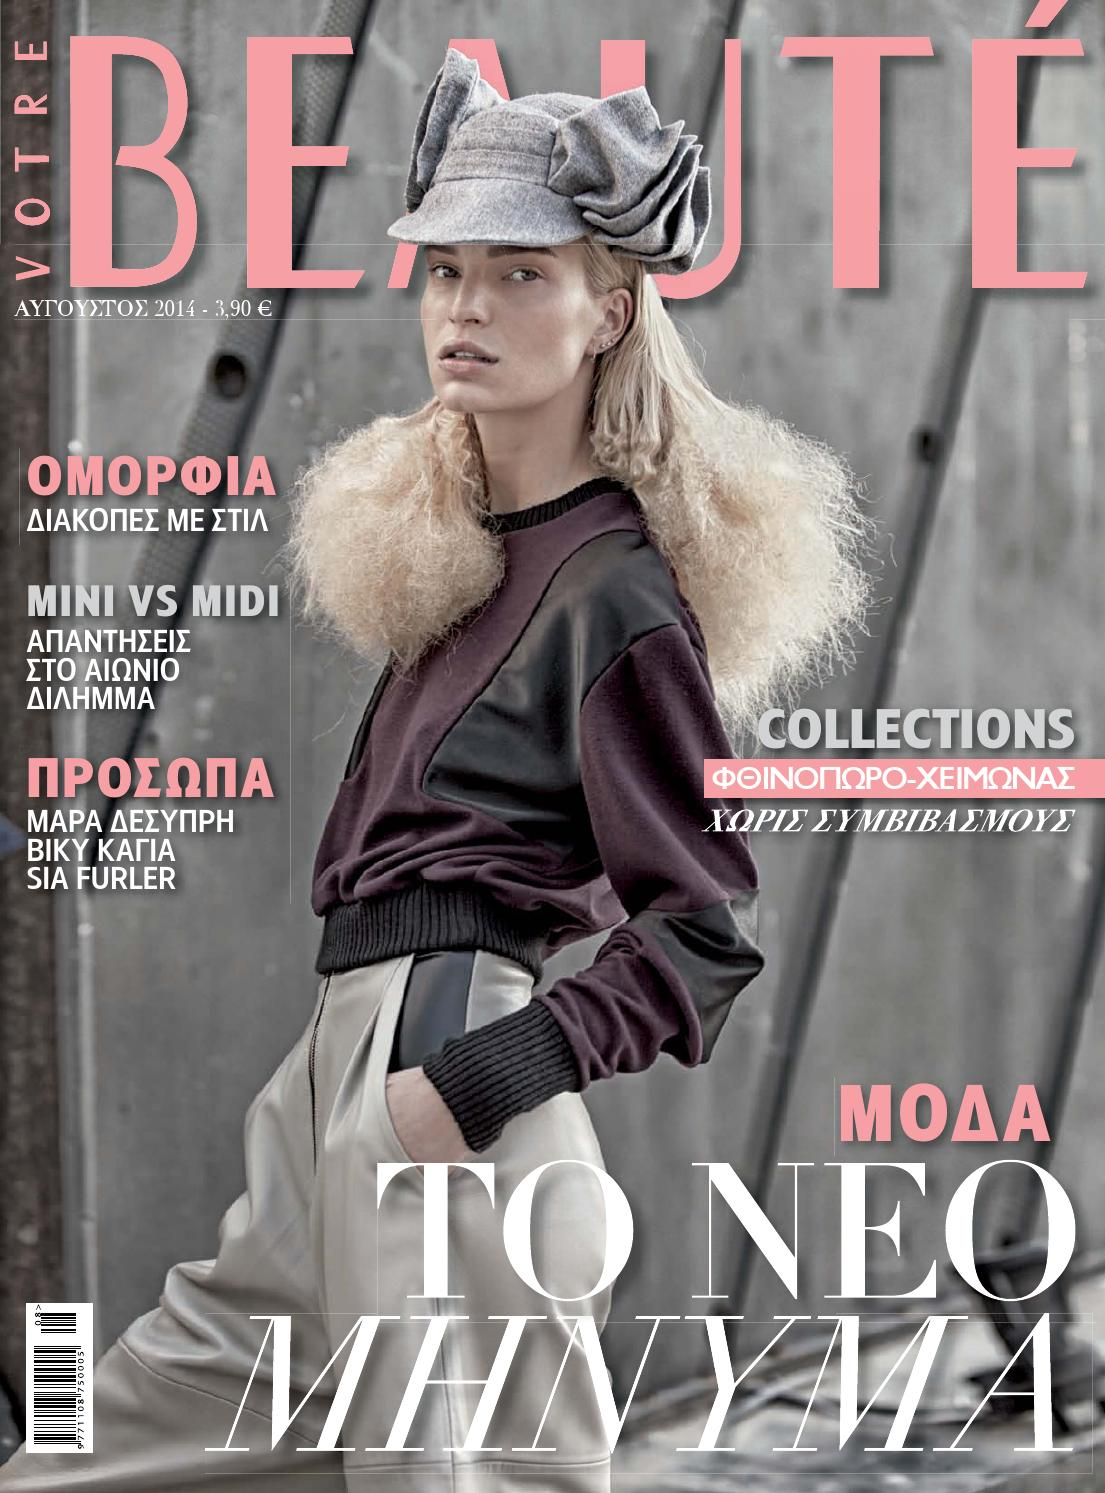 de8cb3d128 BEAUTE AUGUST 2014 by TCT MEDIA - issuu